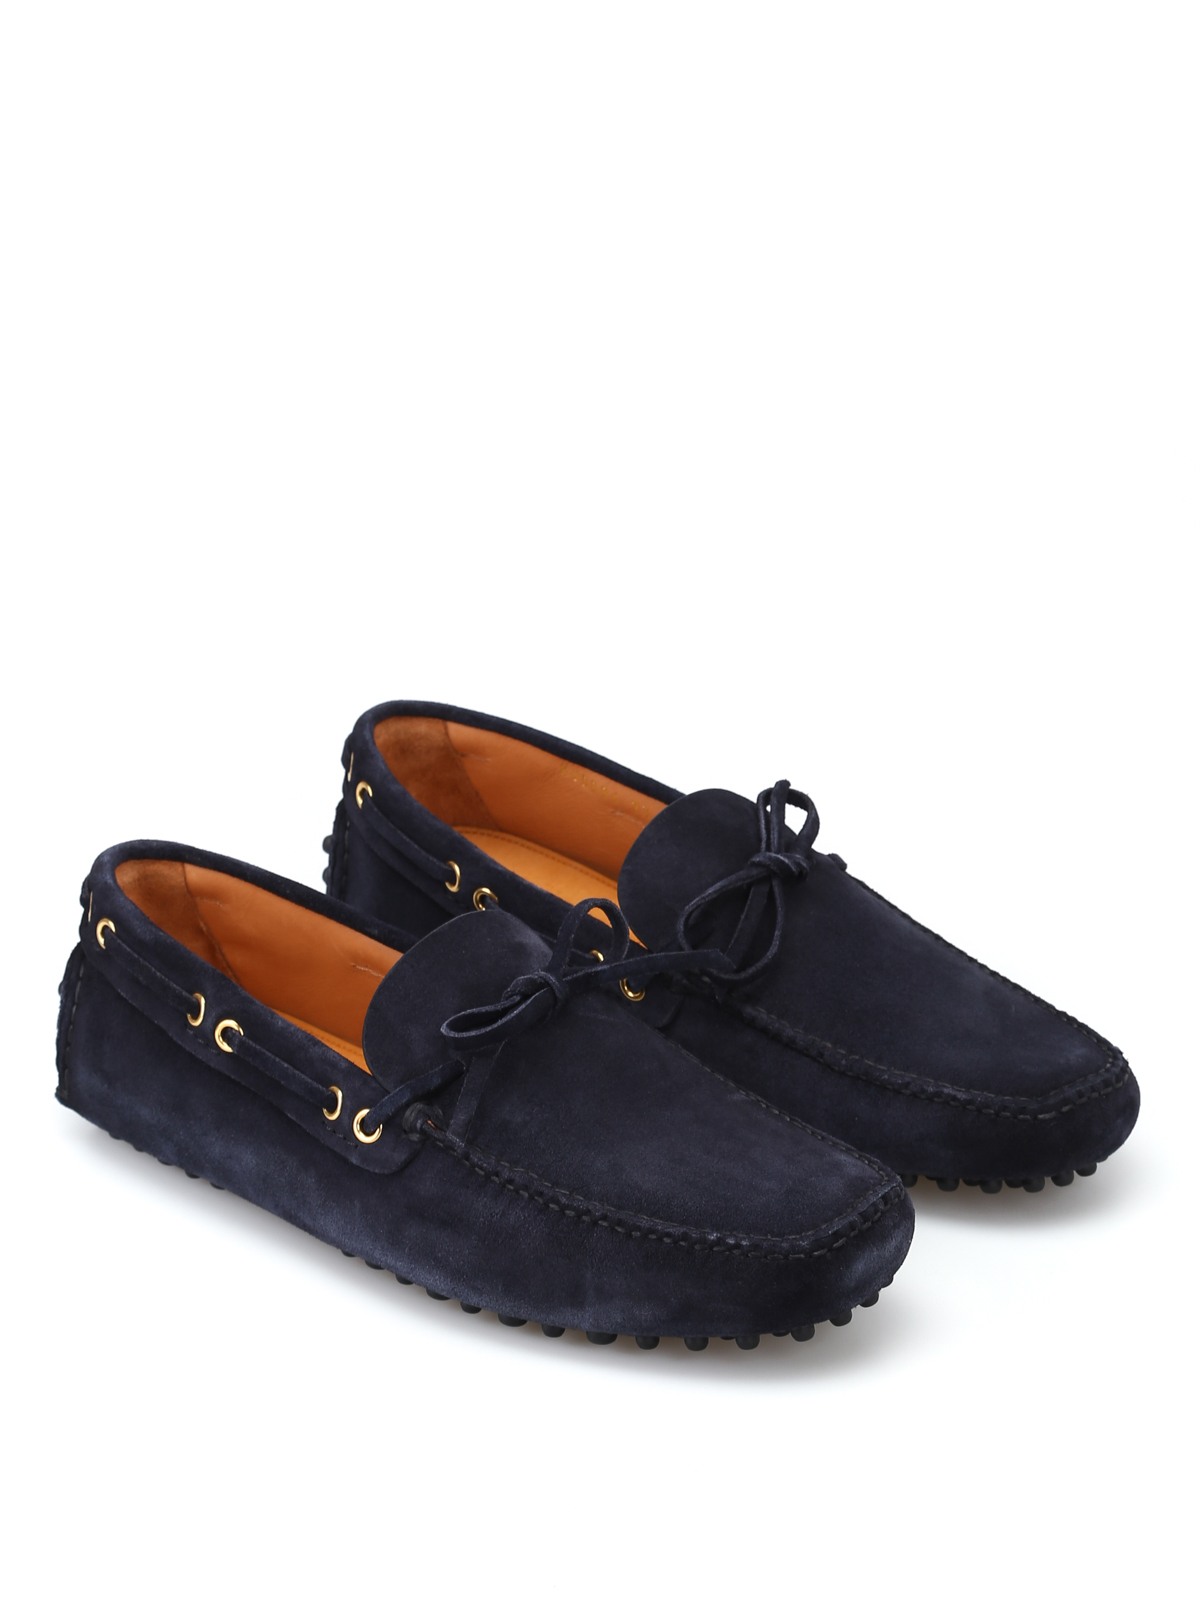 29a31b6e3b9fb1 Car Shoe - Blue suede driver shoes - Loafers   Slippers - KUD006 LVA ...